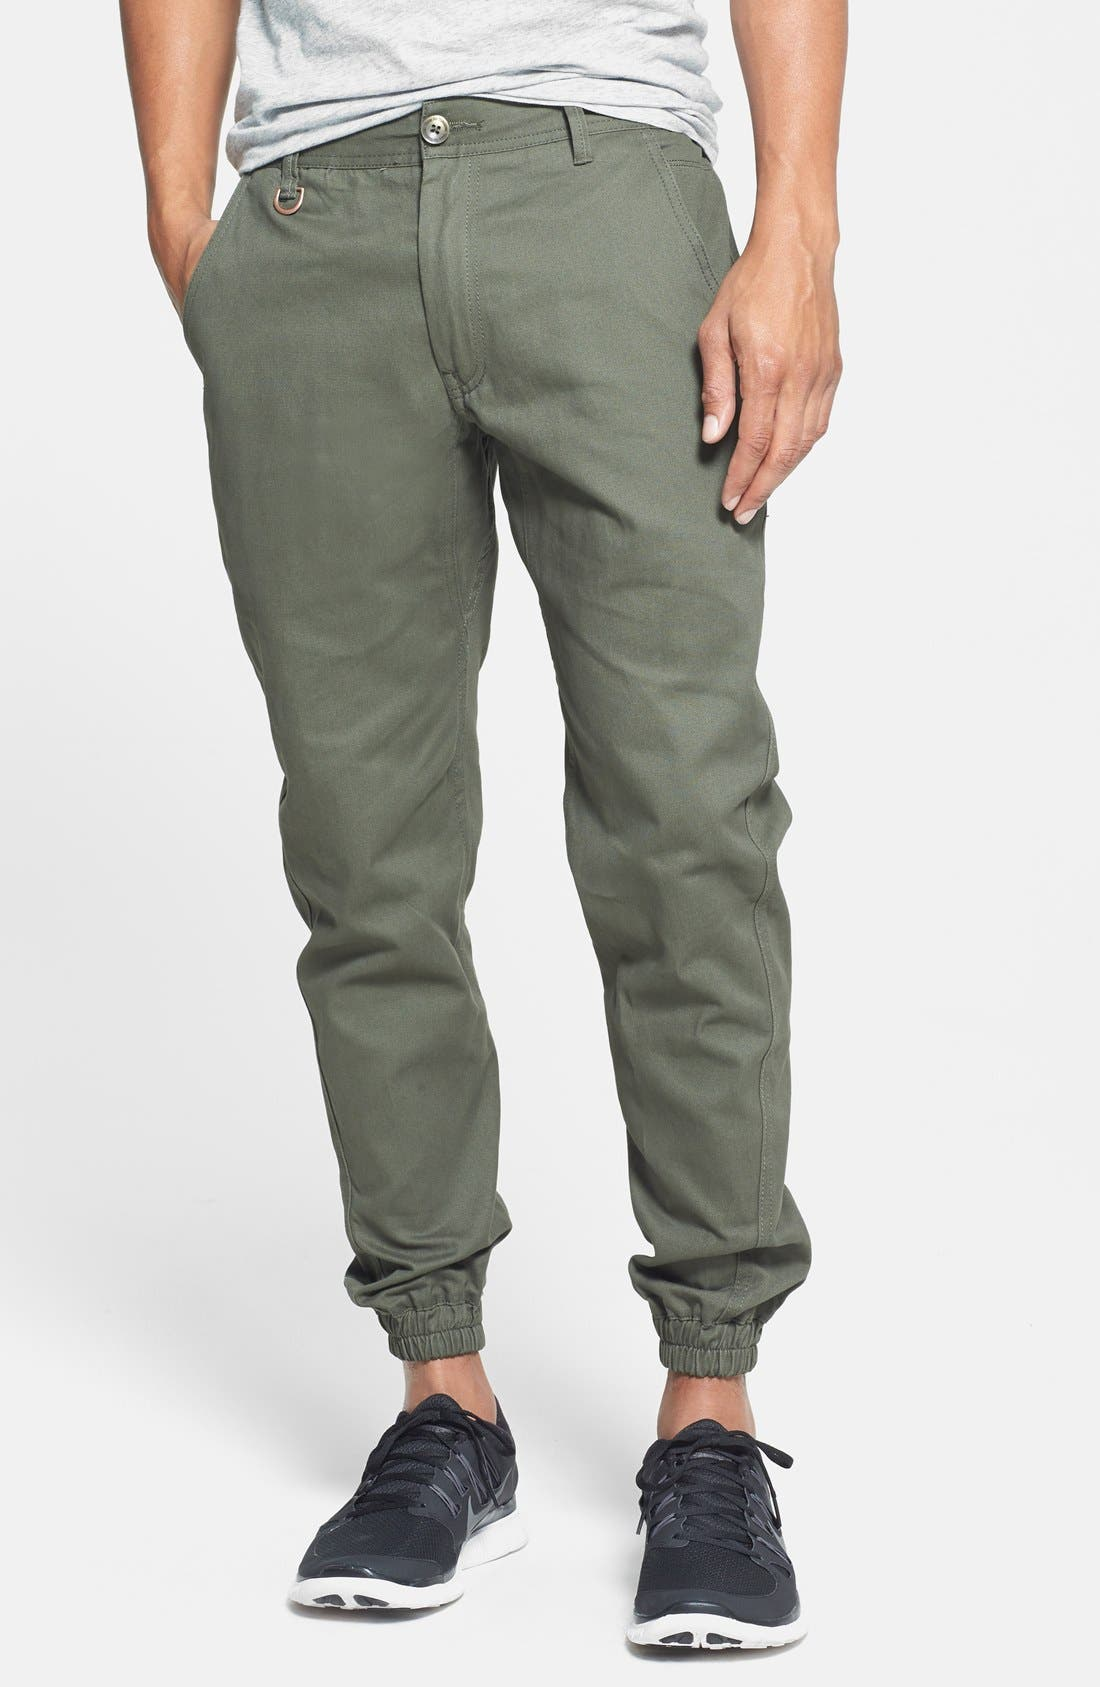 Alternate Image 1 Selected - PUBLISH BRAND Tailored Fit Jogger Chinos